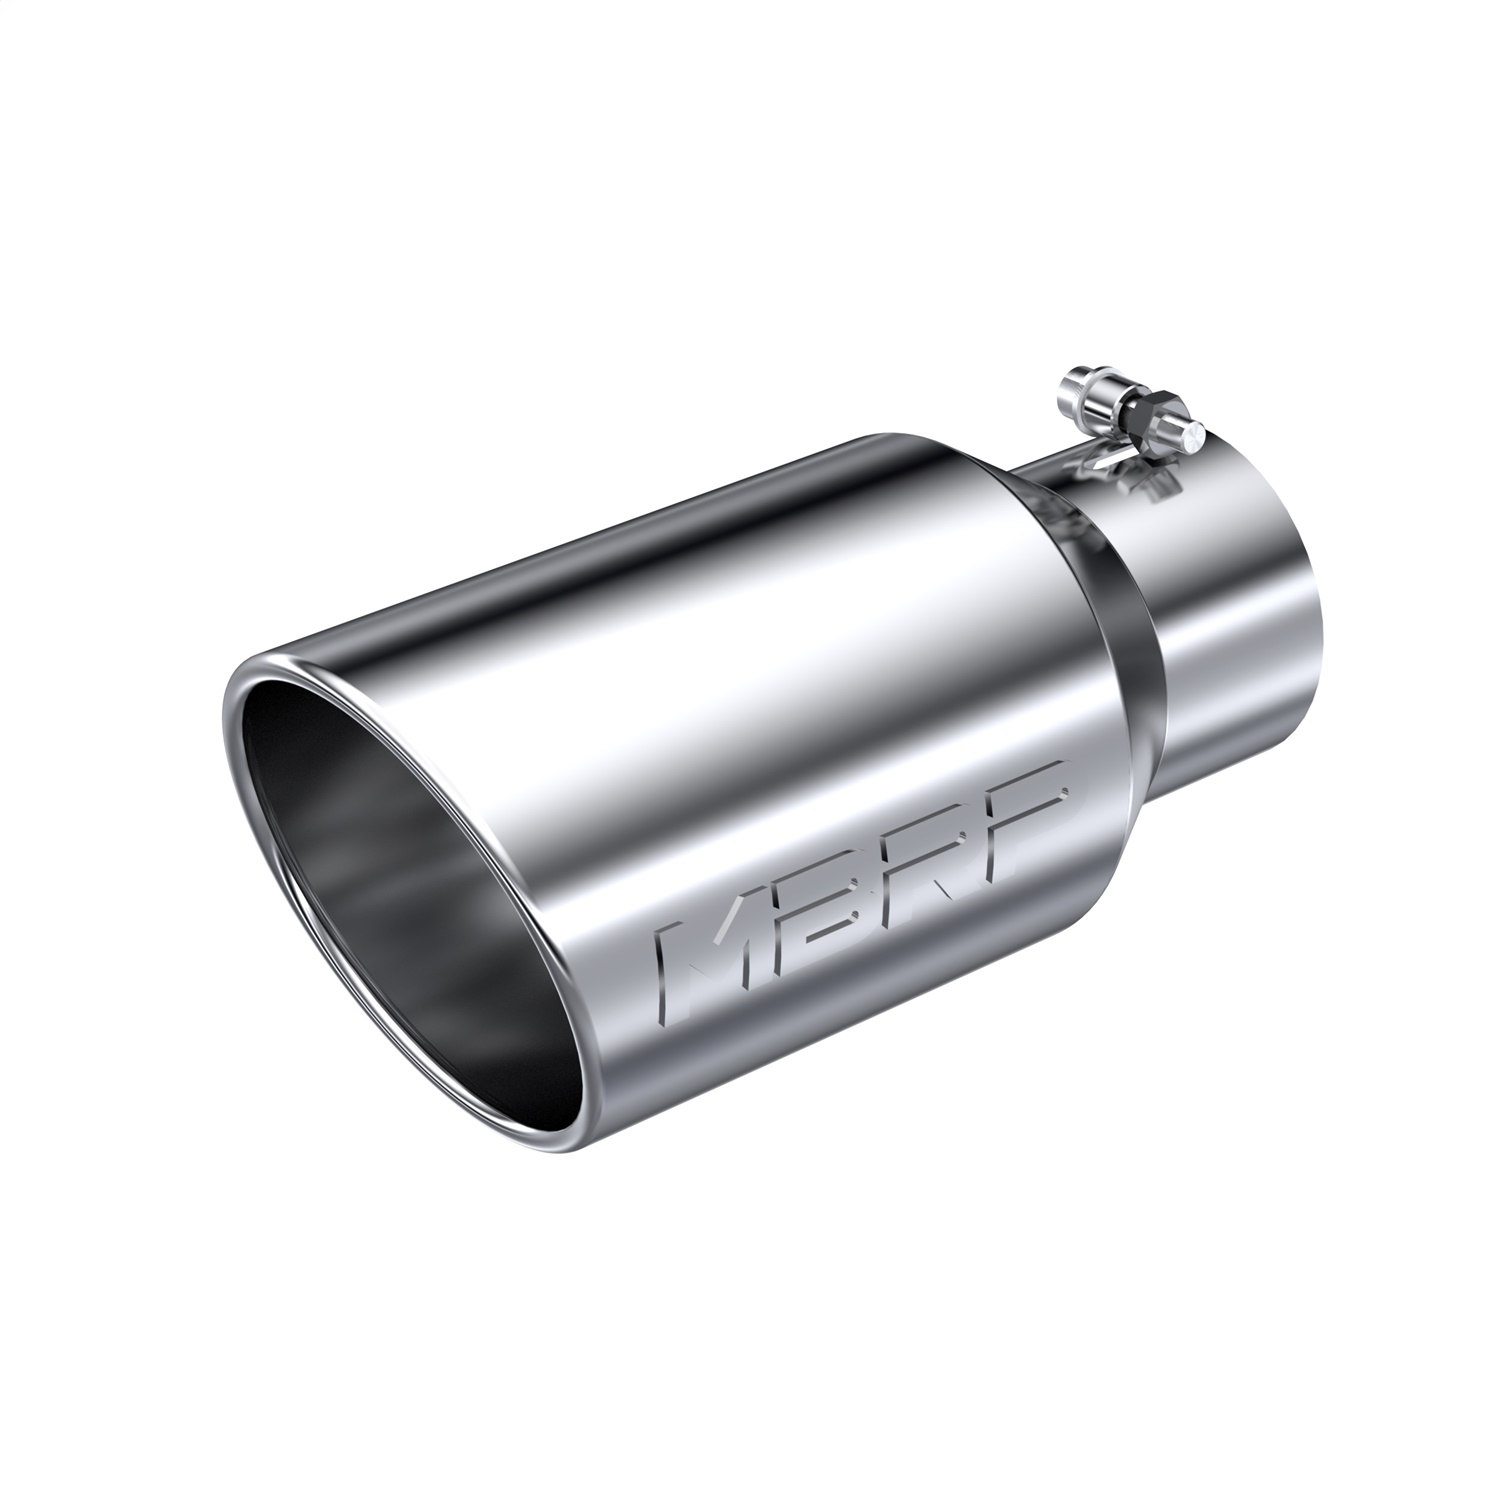 MBRP Exhaust Exhaust Tail Pipe Tip (T5073)